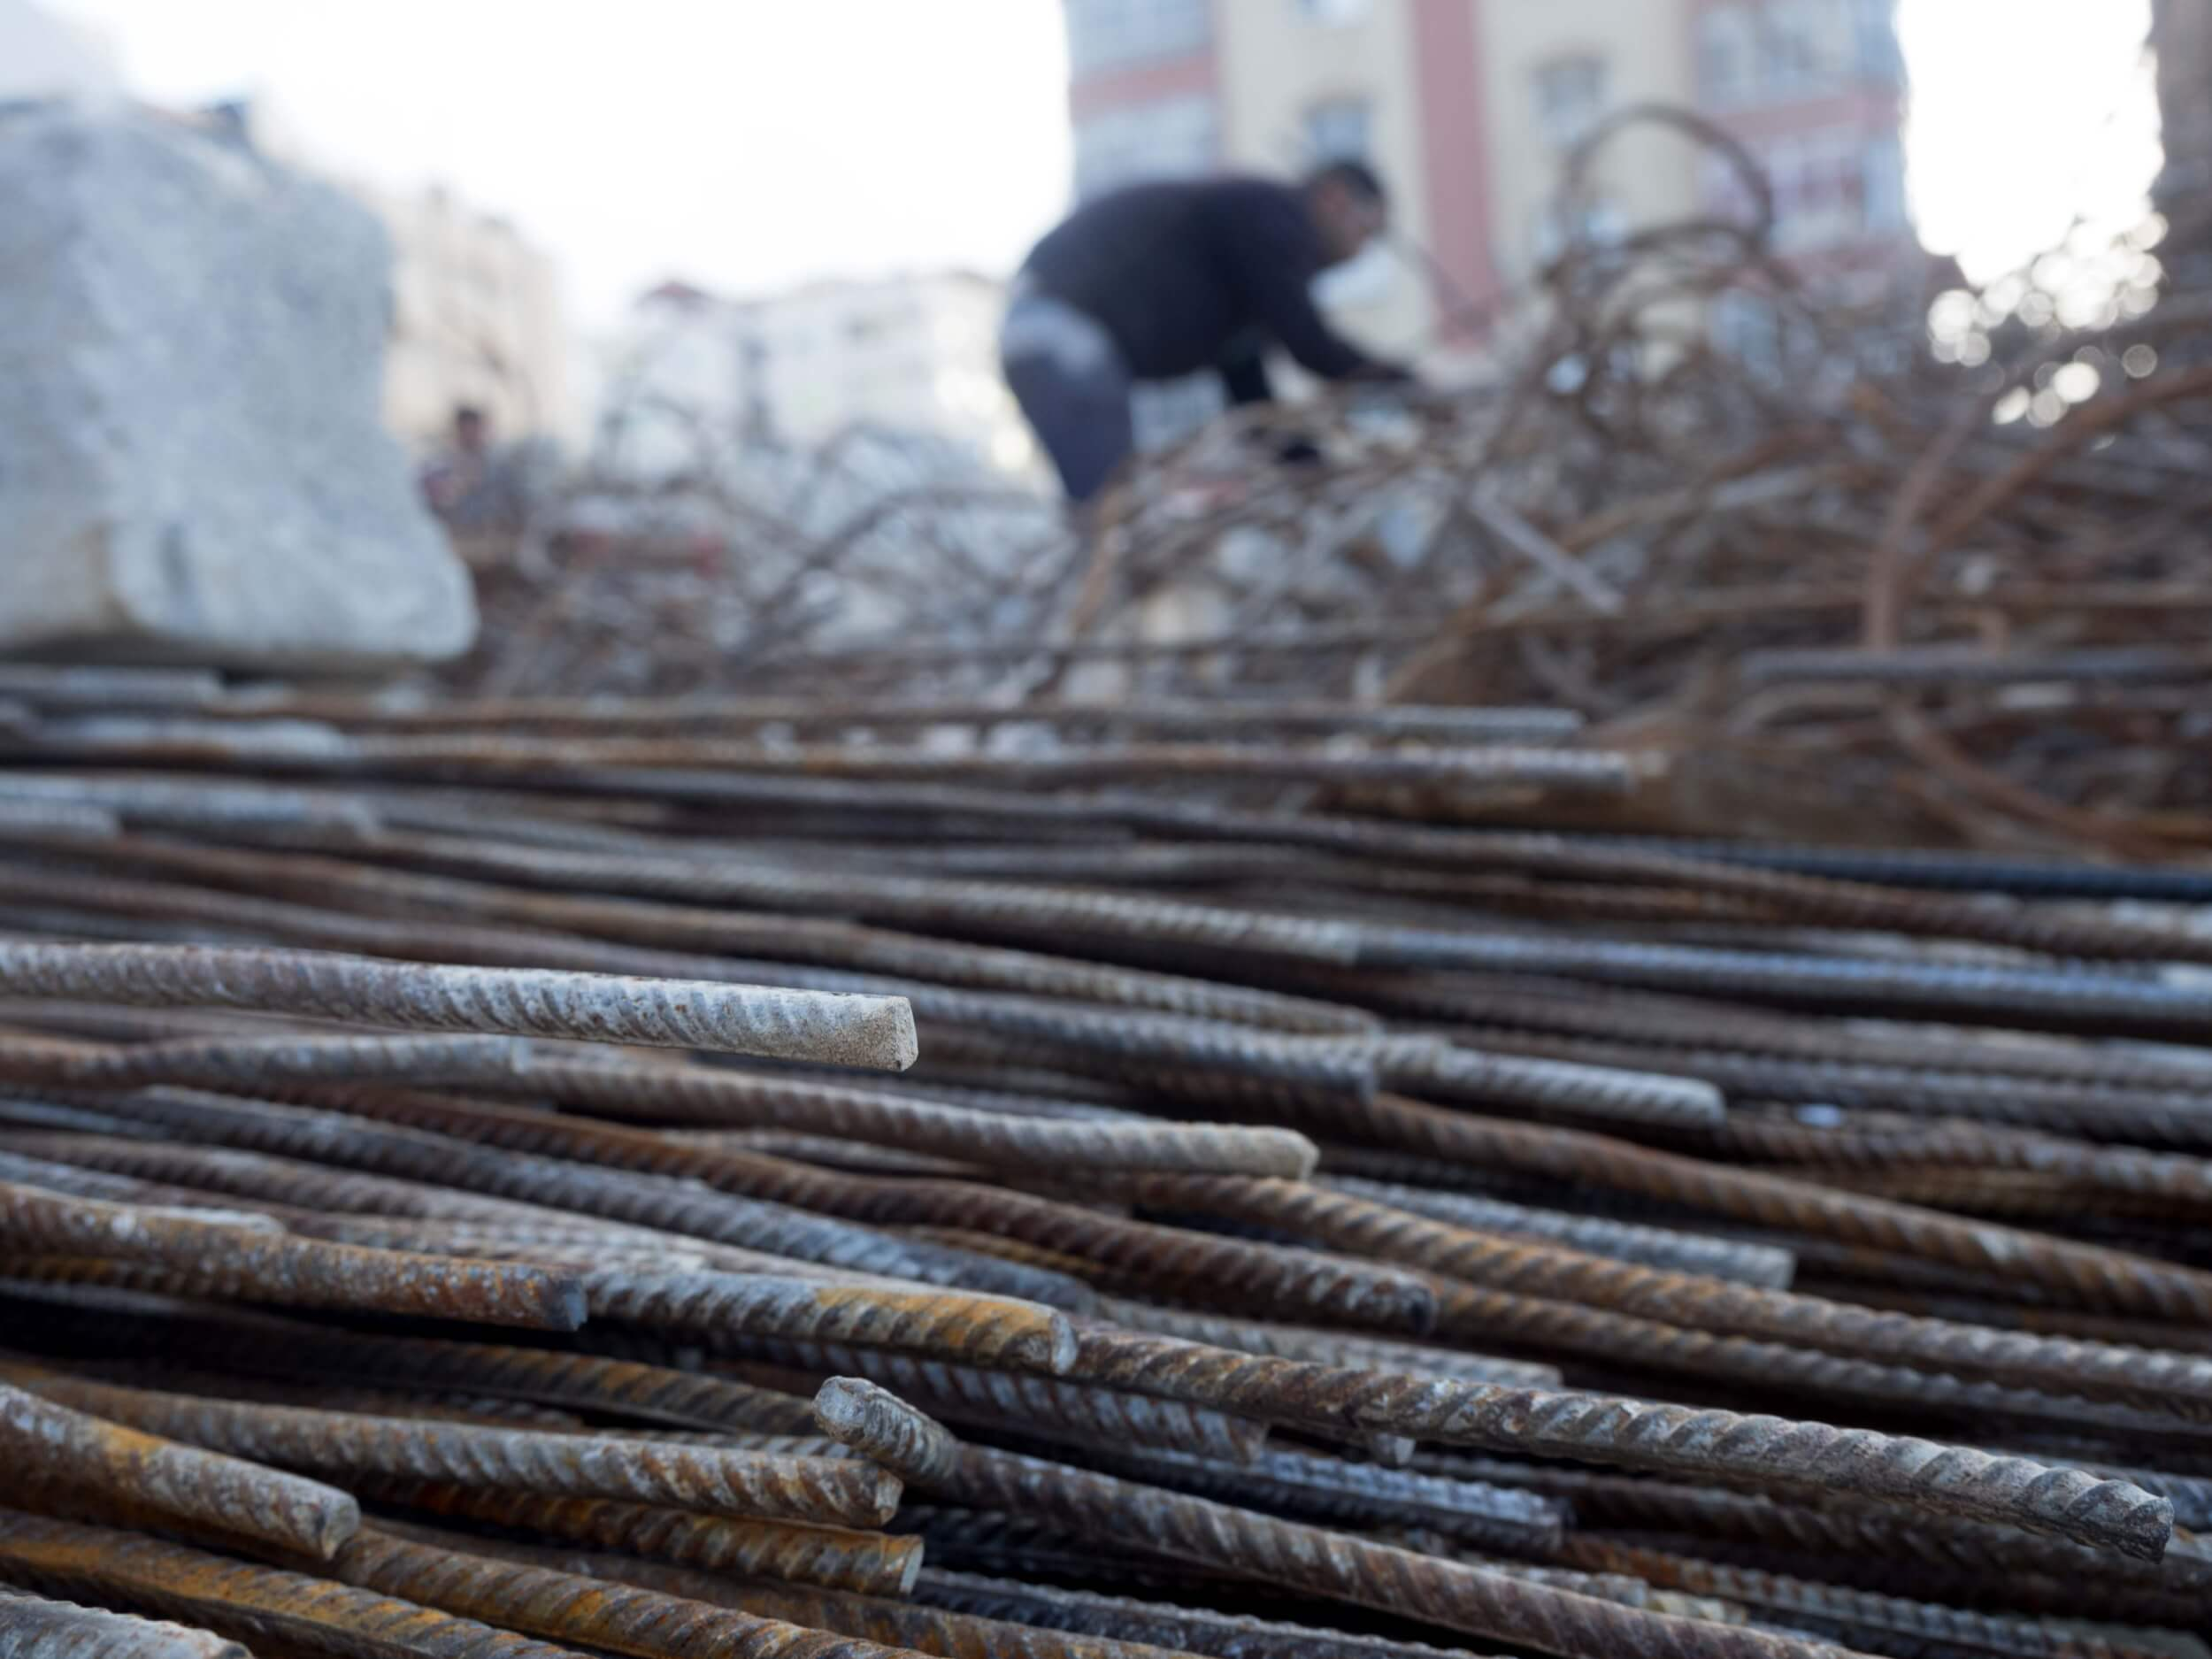 A worker at the Zafer 4 Tower rubble salvages rebar that will be used to rebuild. (Photo: Dan Cohen)